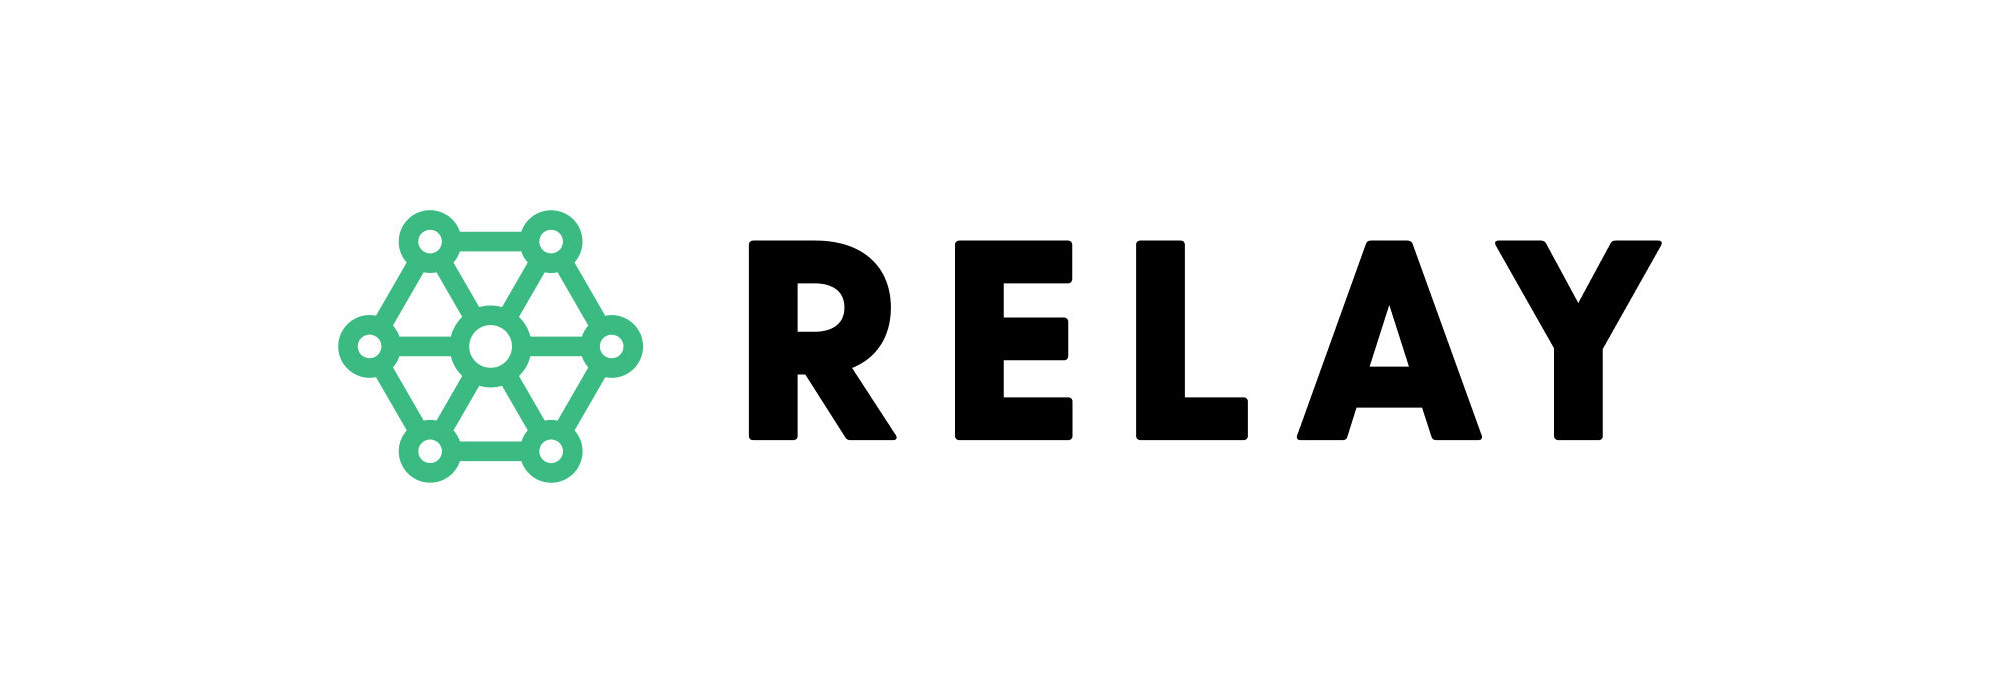 Fintech Company Relay Payments Chooses Cobb County ...